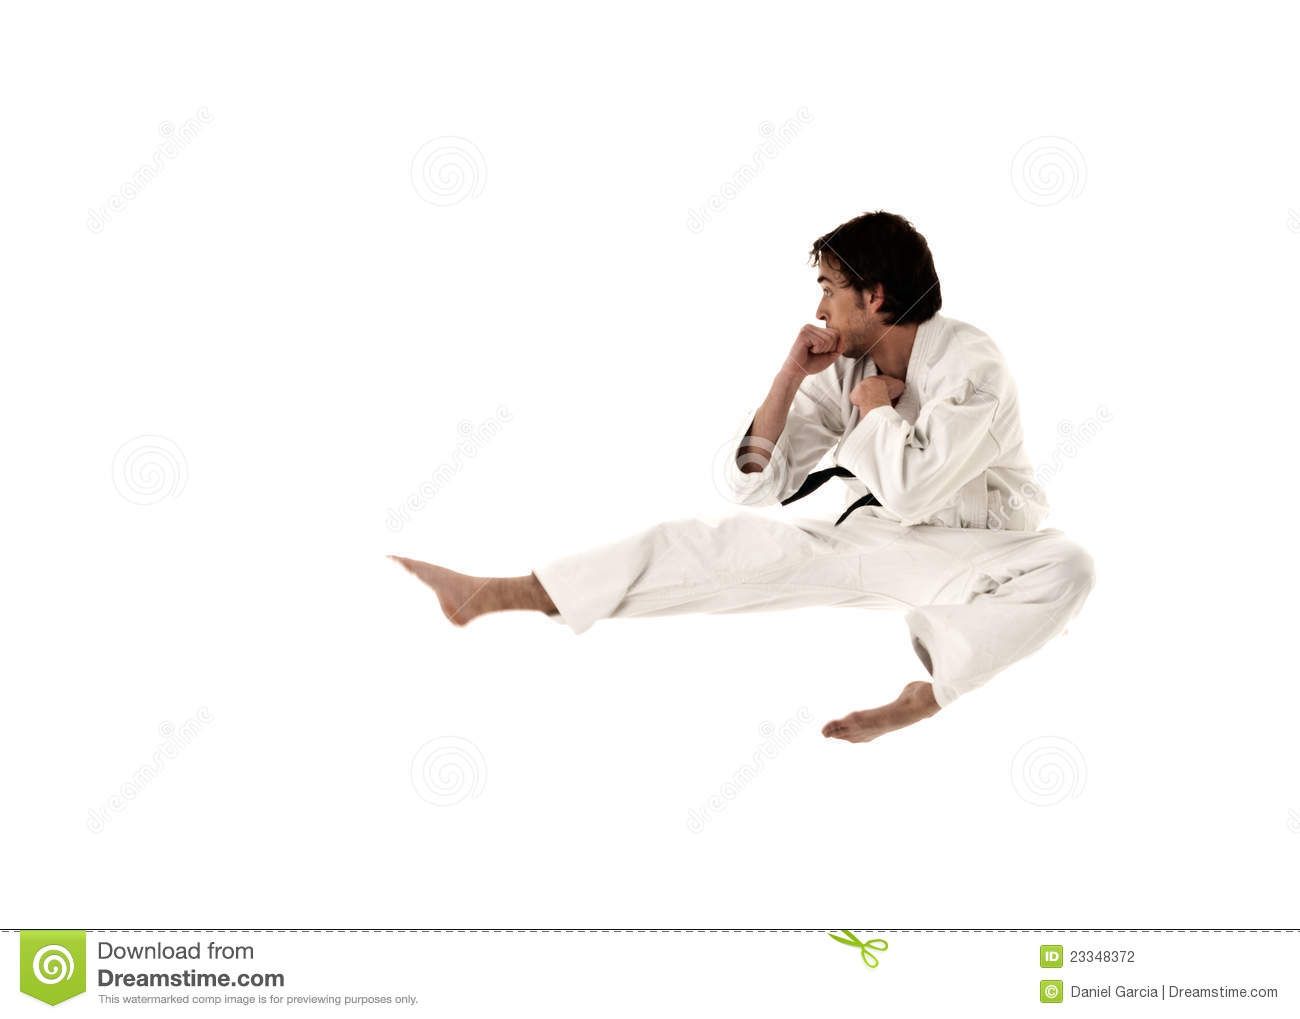 Karate flying kick young male fighter isolated on white background Flying Karate Kick